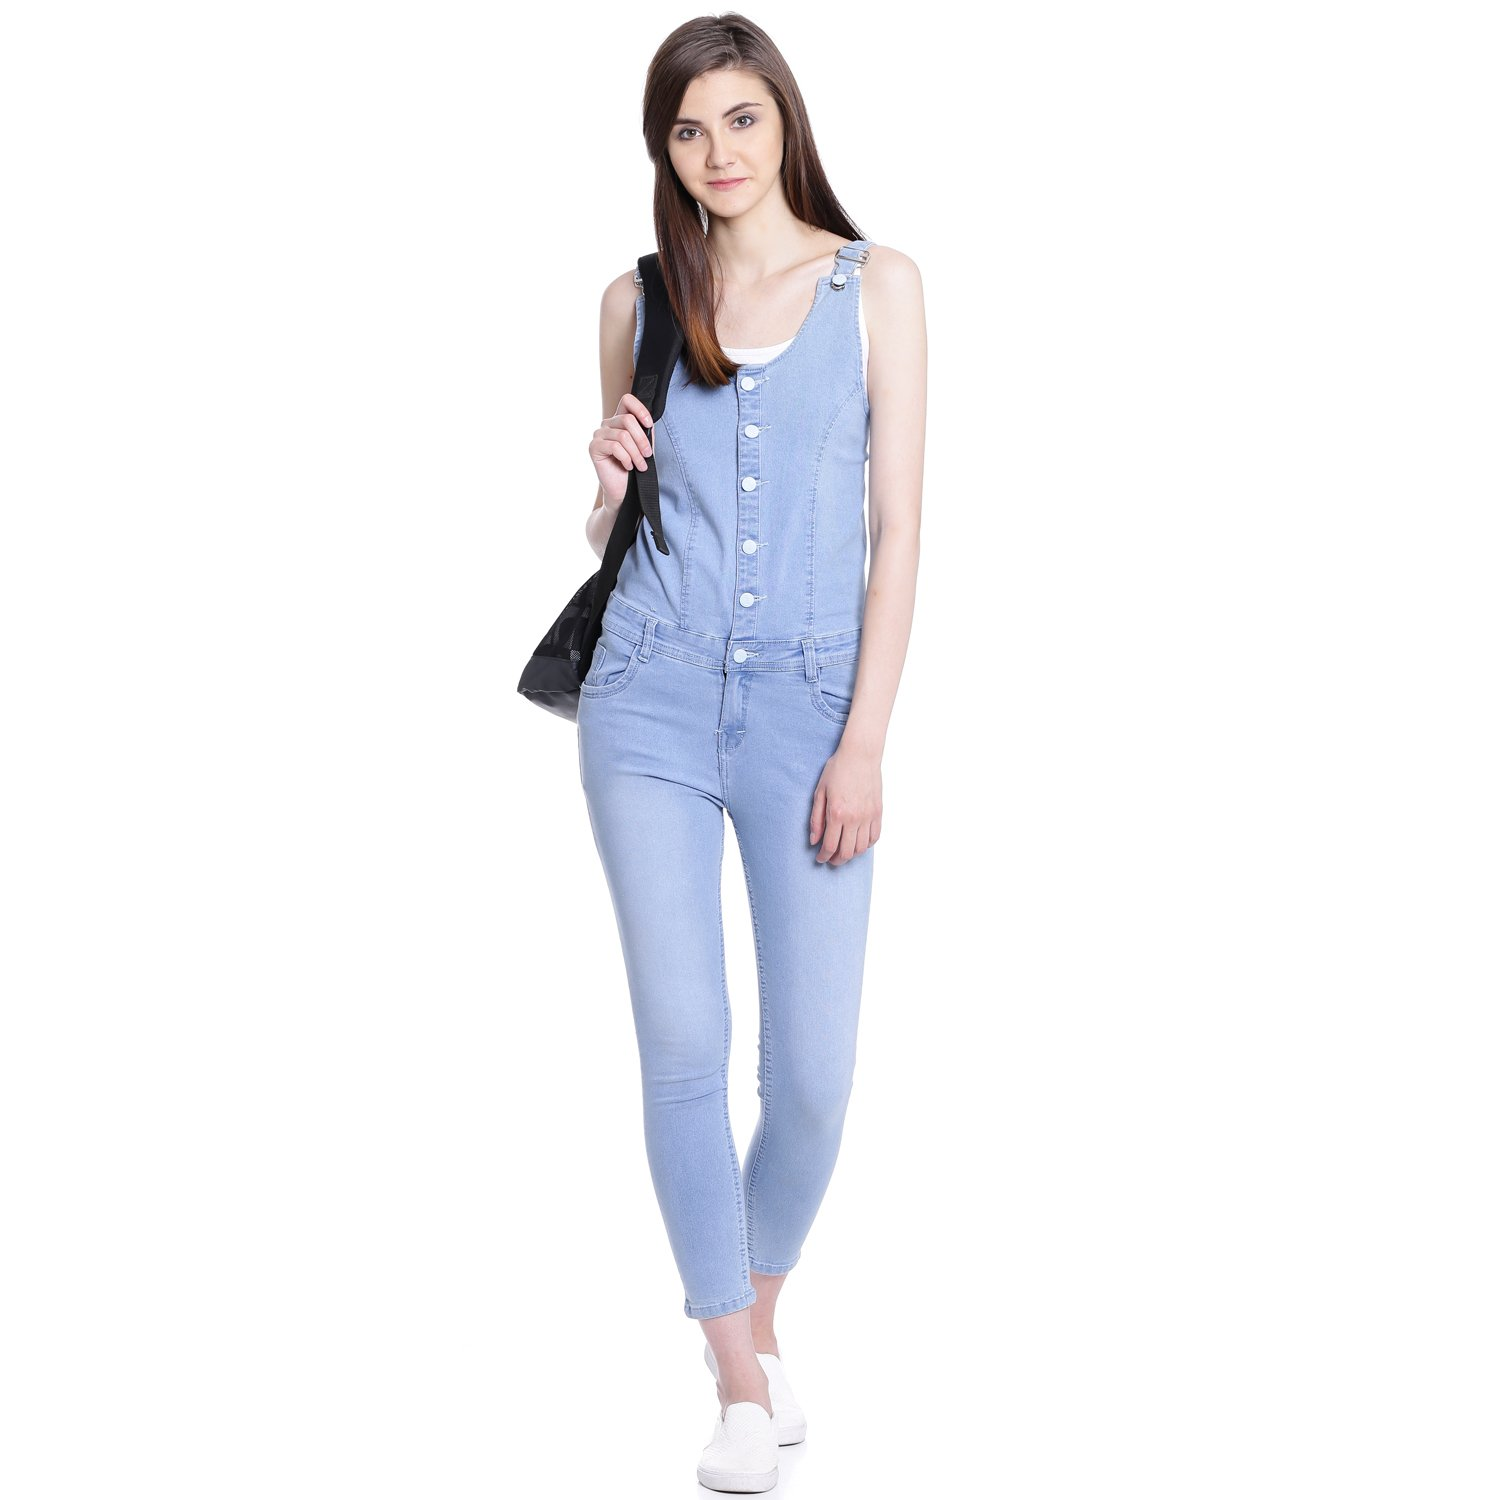 09c2afc62a Jumpsuits For Women  Buy Jumpsuits For Girls online at best prices ...